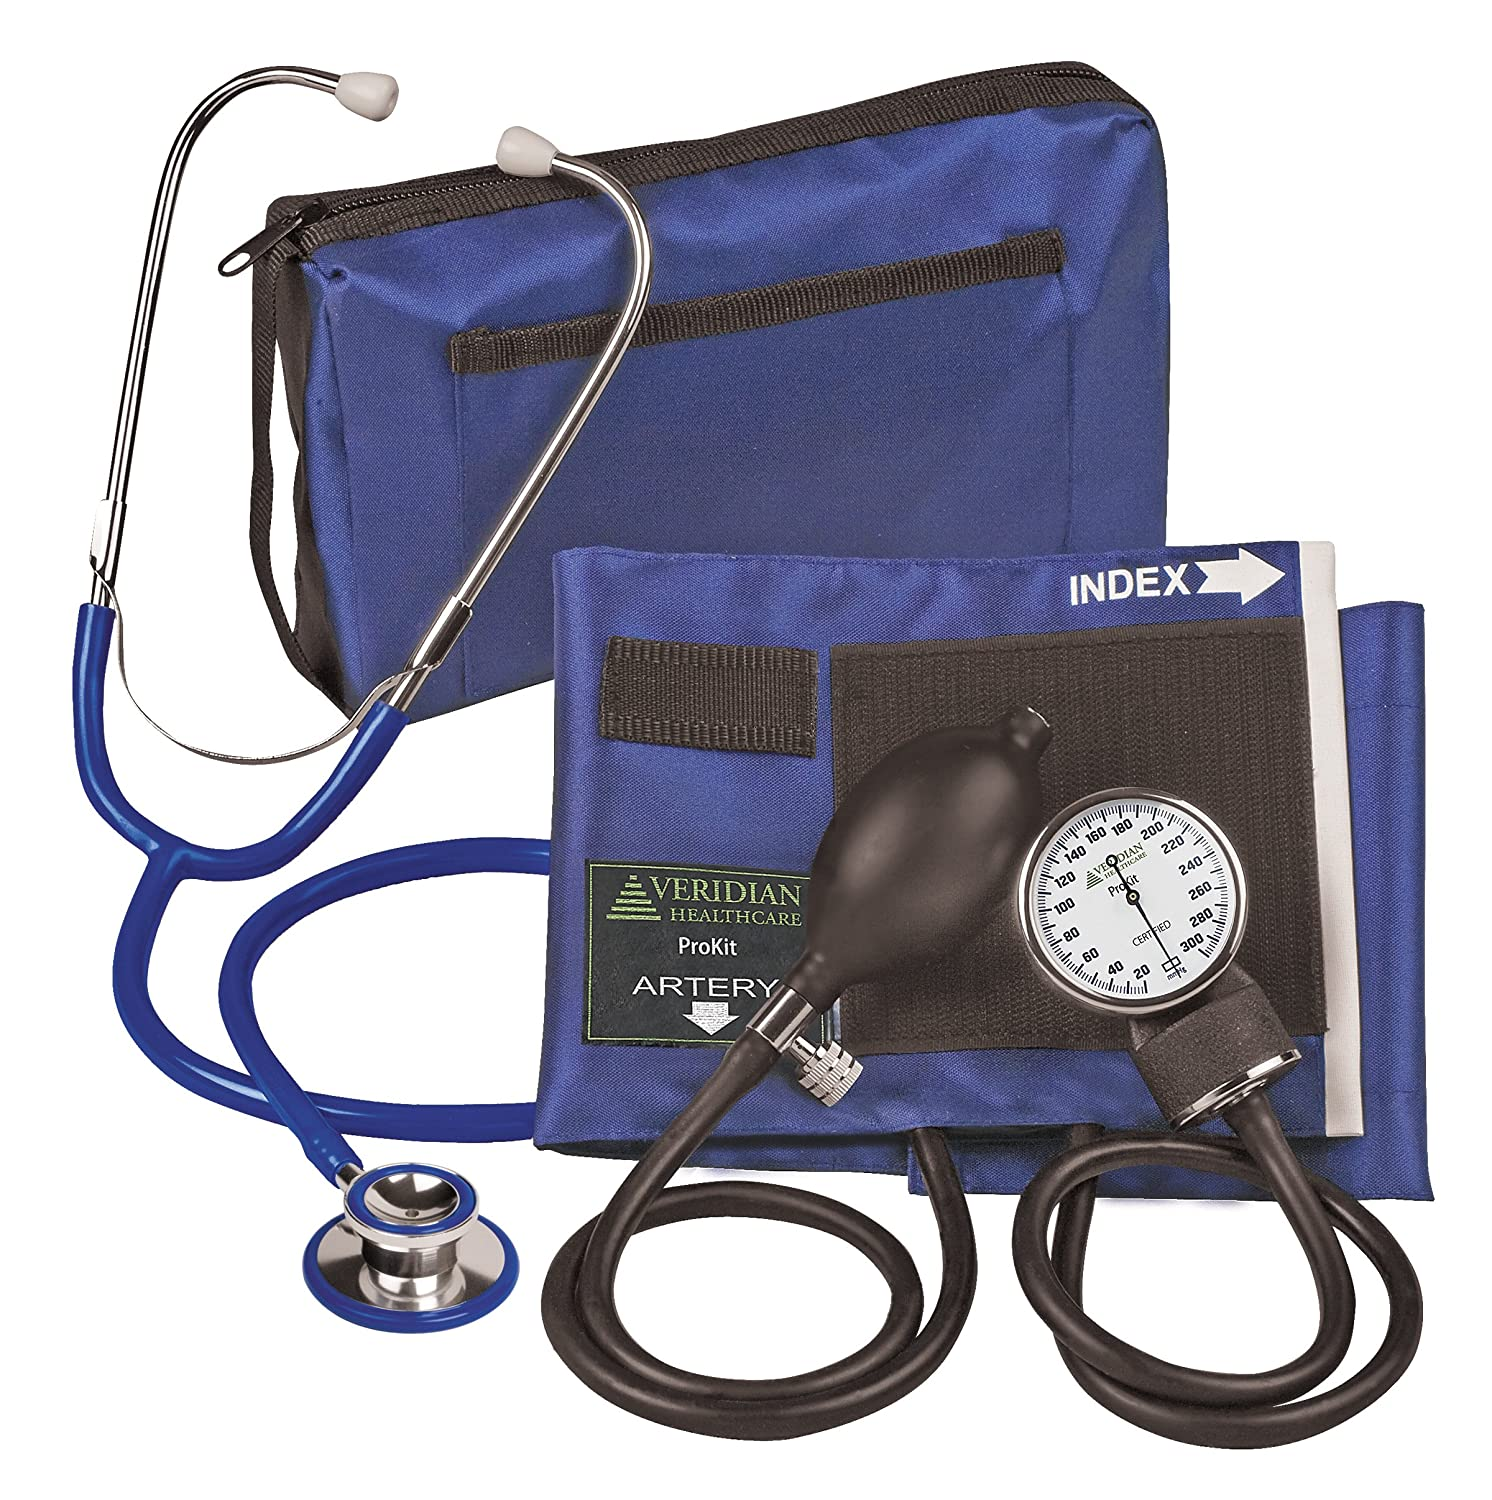 Amazon.com: Veridian 02-12703 Aneroid Sphygmomanometer with Dual-head Stethoscope Kit, Adult, Royal Blue: Health & Personal Care